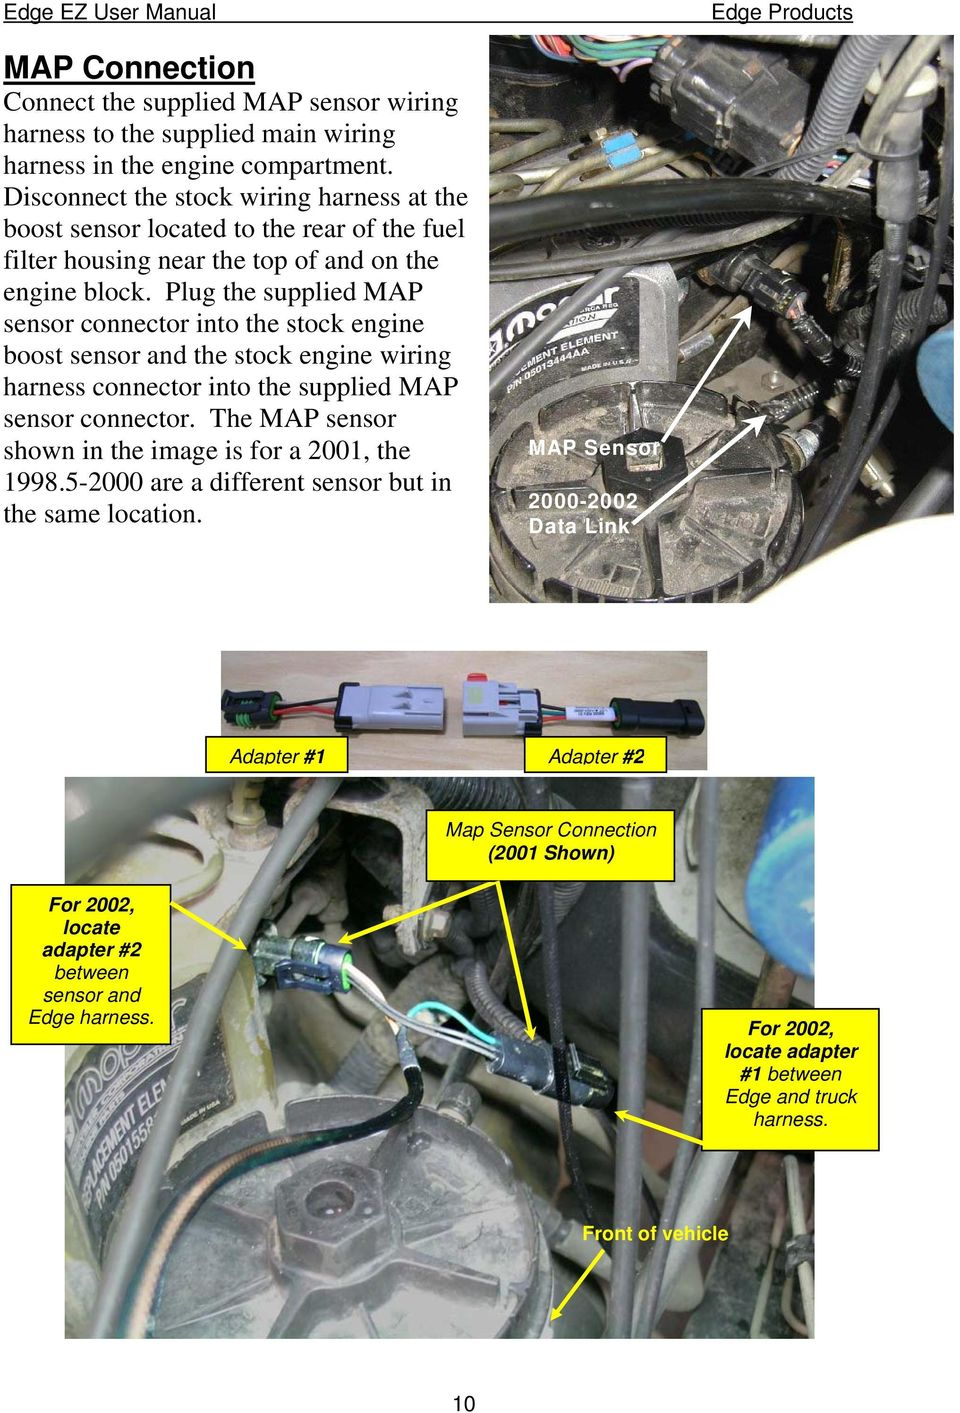 Edge Ez Wiring Diagram Detailed Diagrams Dodge Cummins 5 9l 24 Valve Products Module Installation 12v Battery Charger Circuit